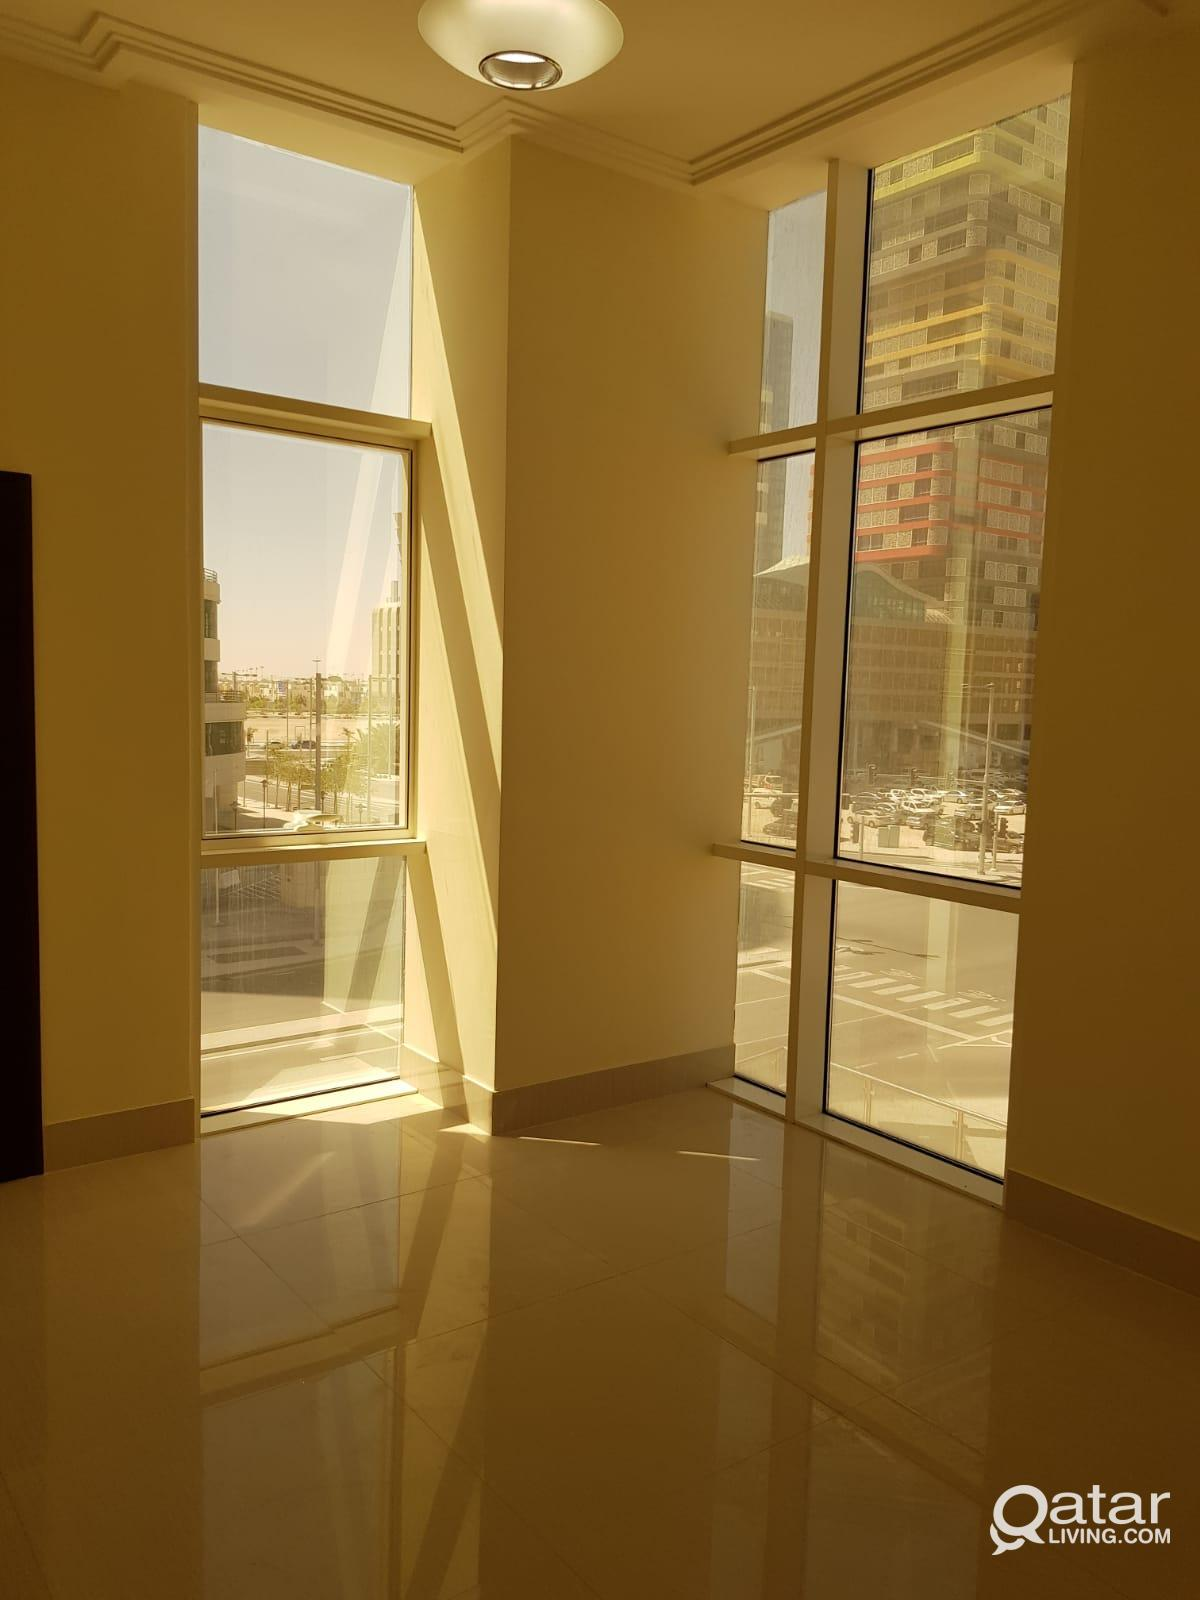 2BR, 7500+1 MONTH FREE STAY, Lusail Marina.